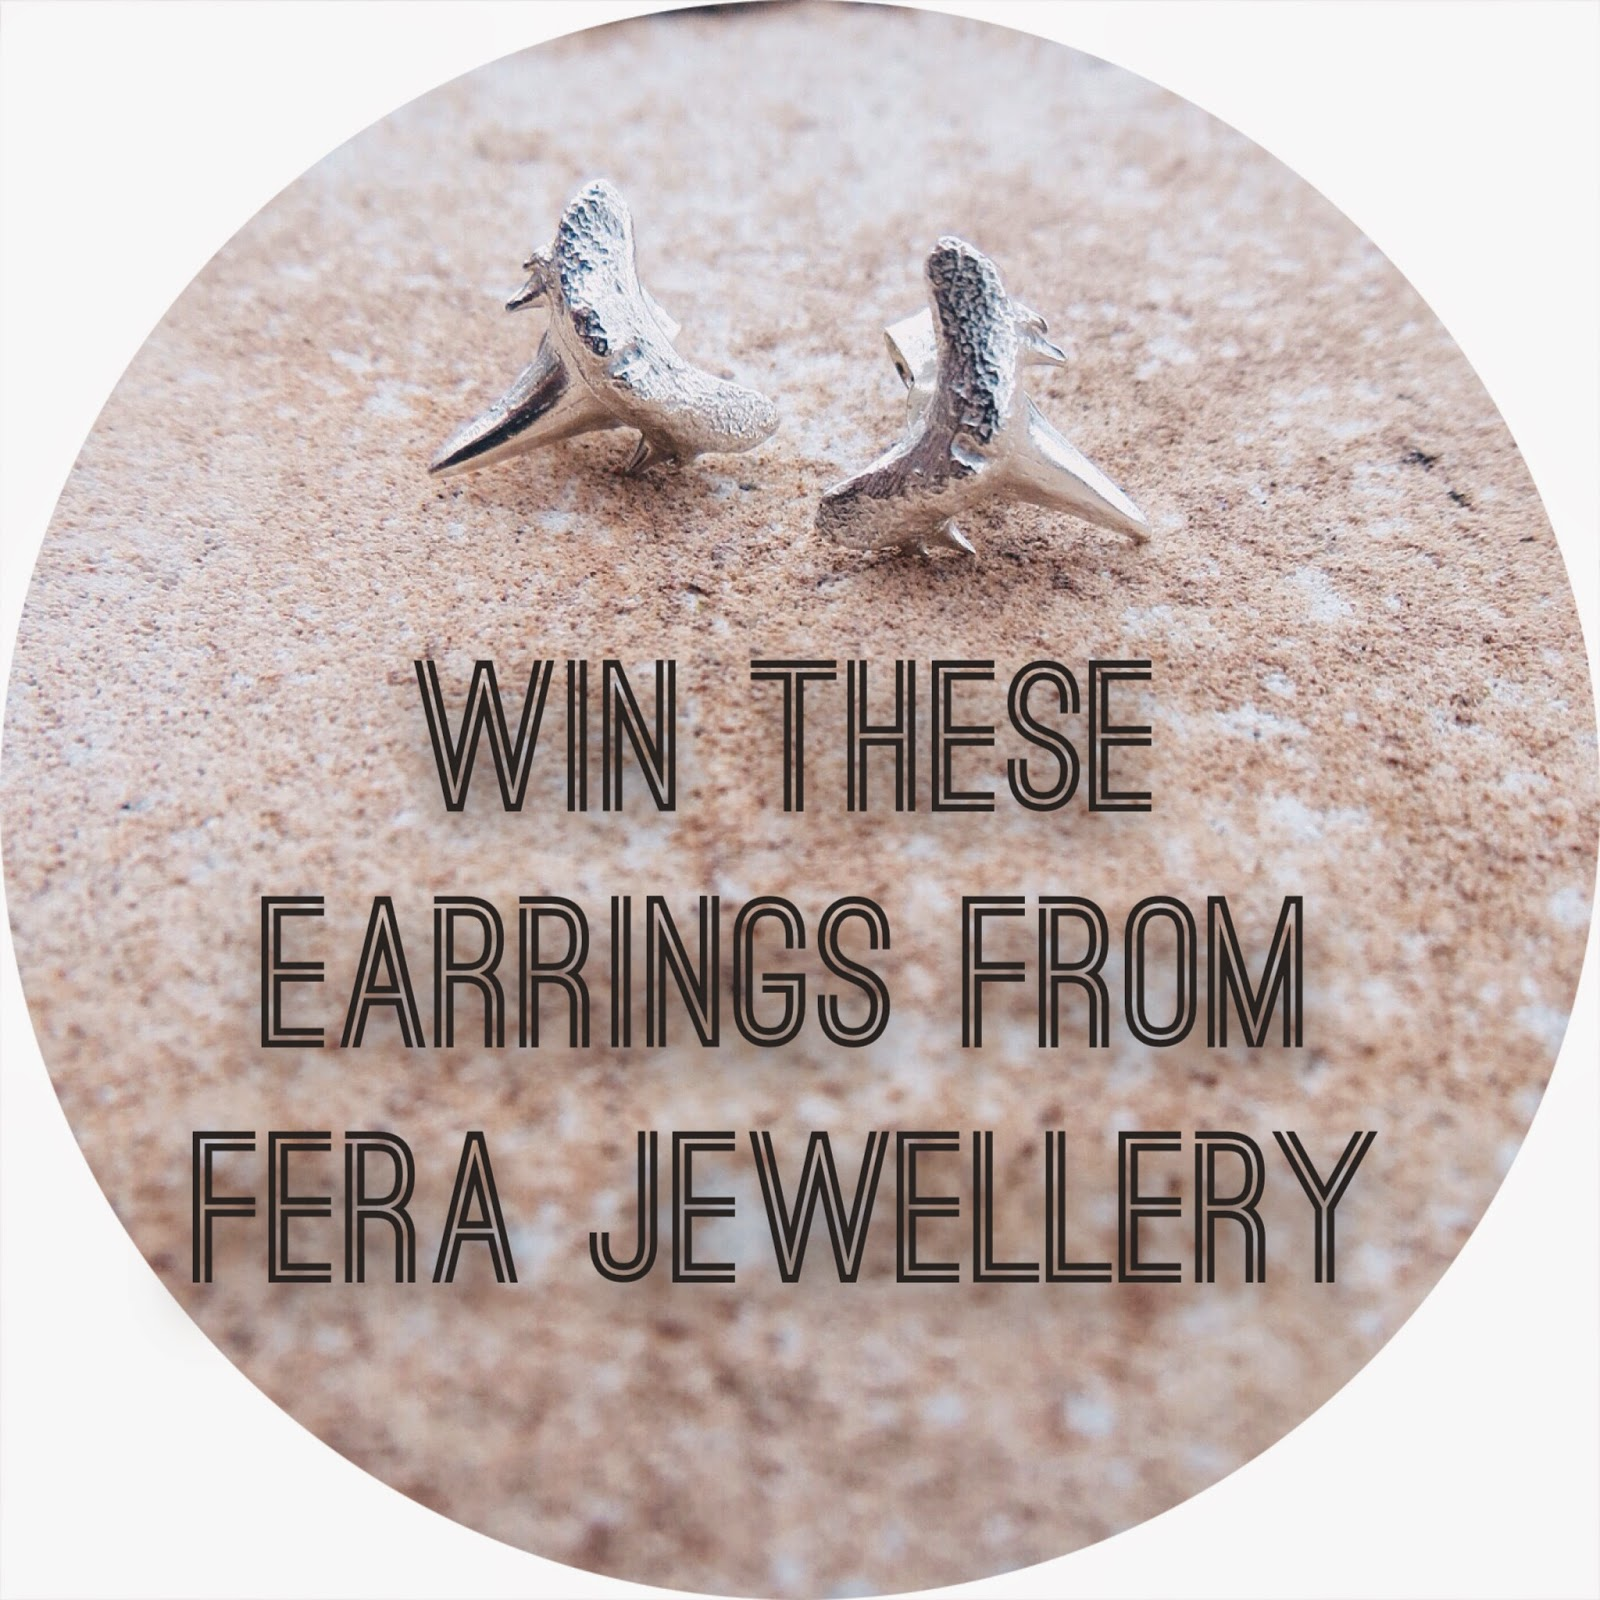 fera jewellery, shark tooth, shark tooth earrings, freebie friday, giveaway, win it, insta win, sweepstakes, contest